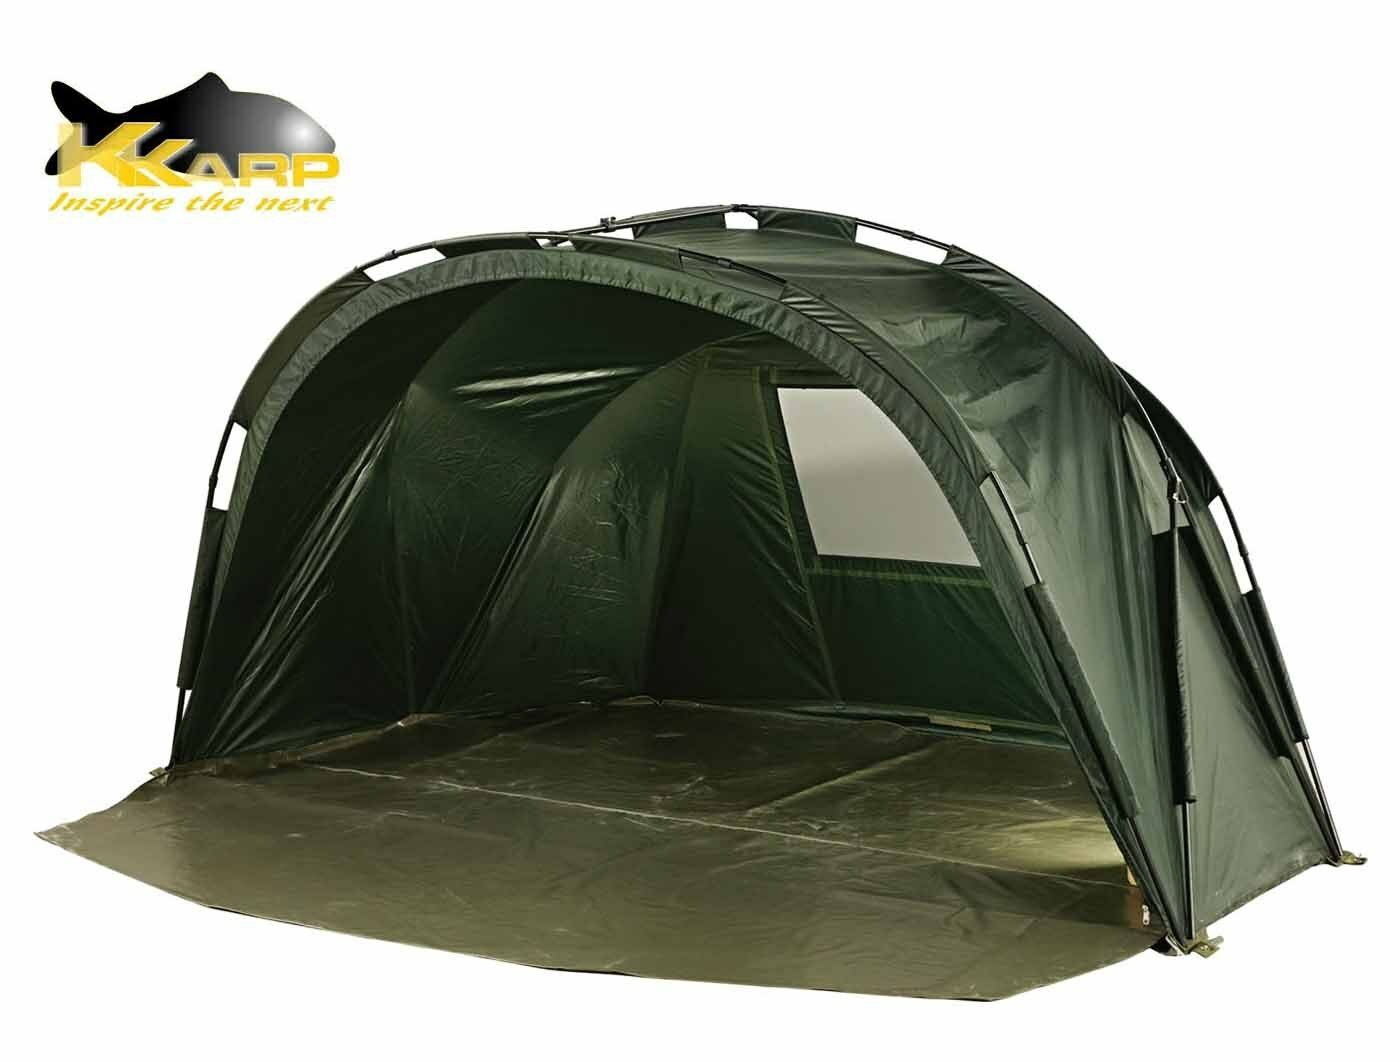 19130170 Tenda Pesca Carpfishing Enemy Dome Due Posti Tessuto HT RN